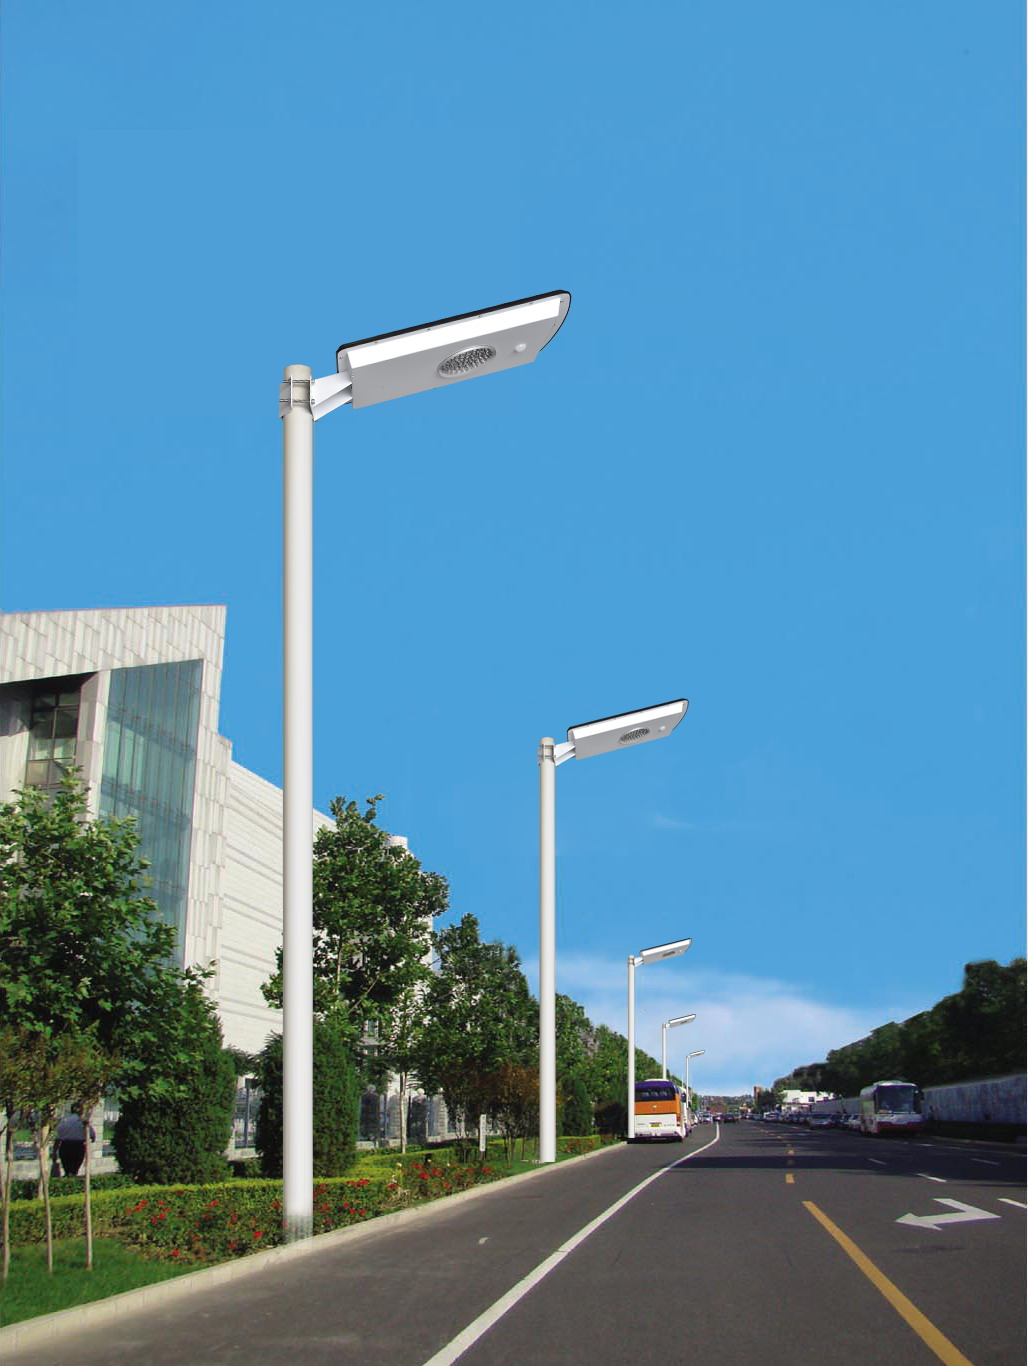 10 Watt Solar Street Light with Cell Phone Controls